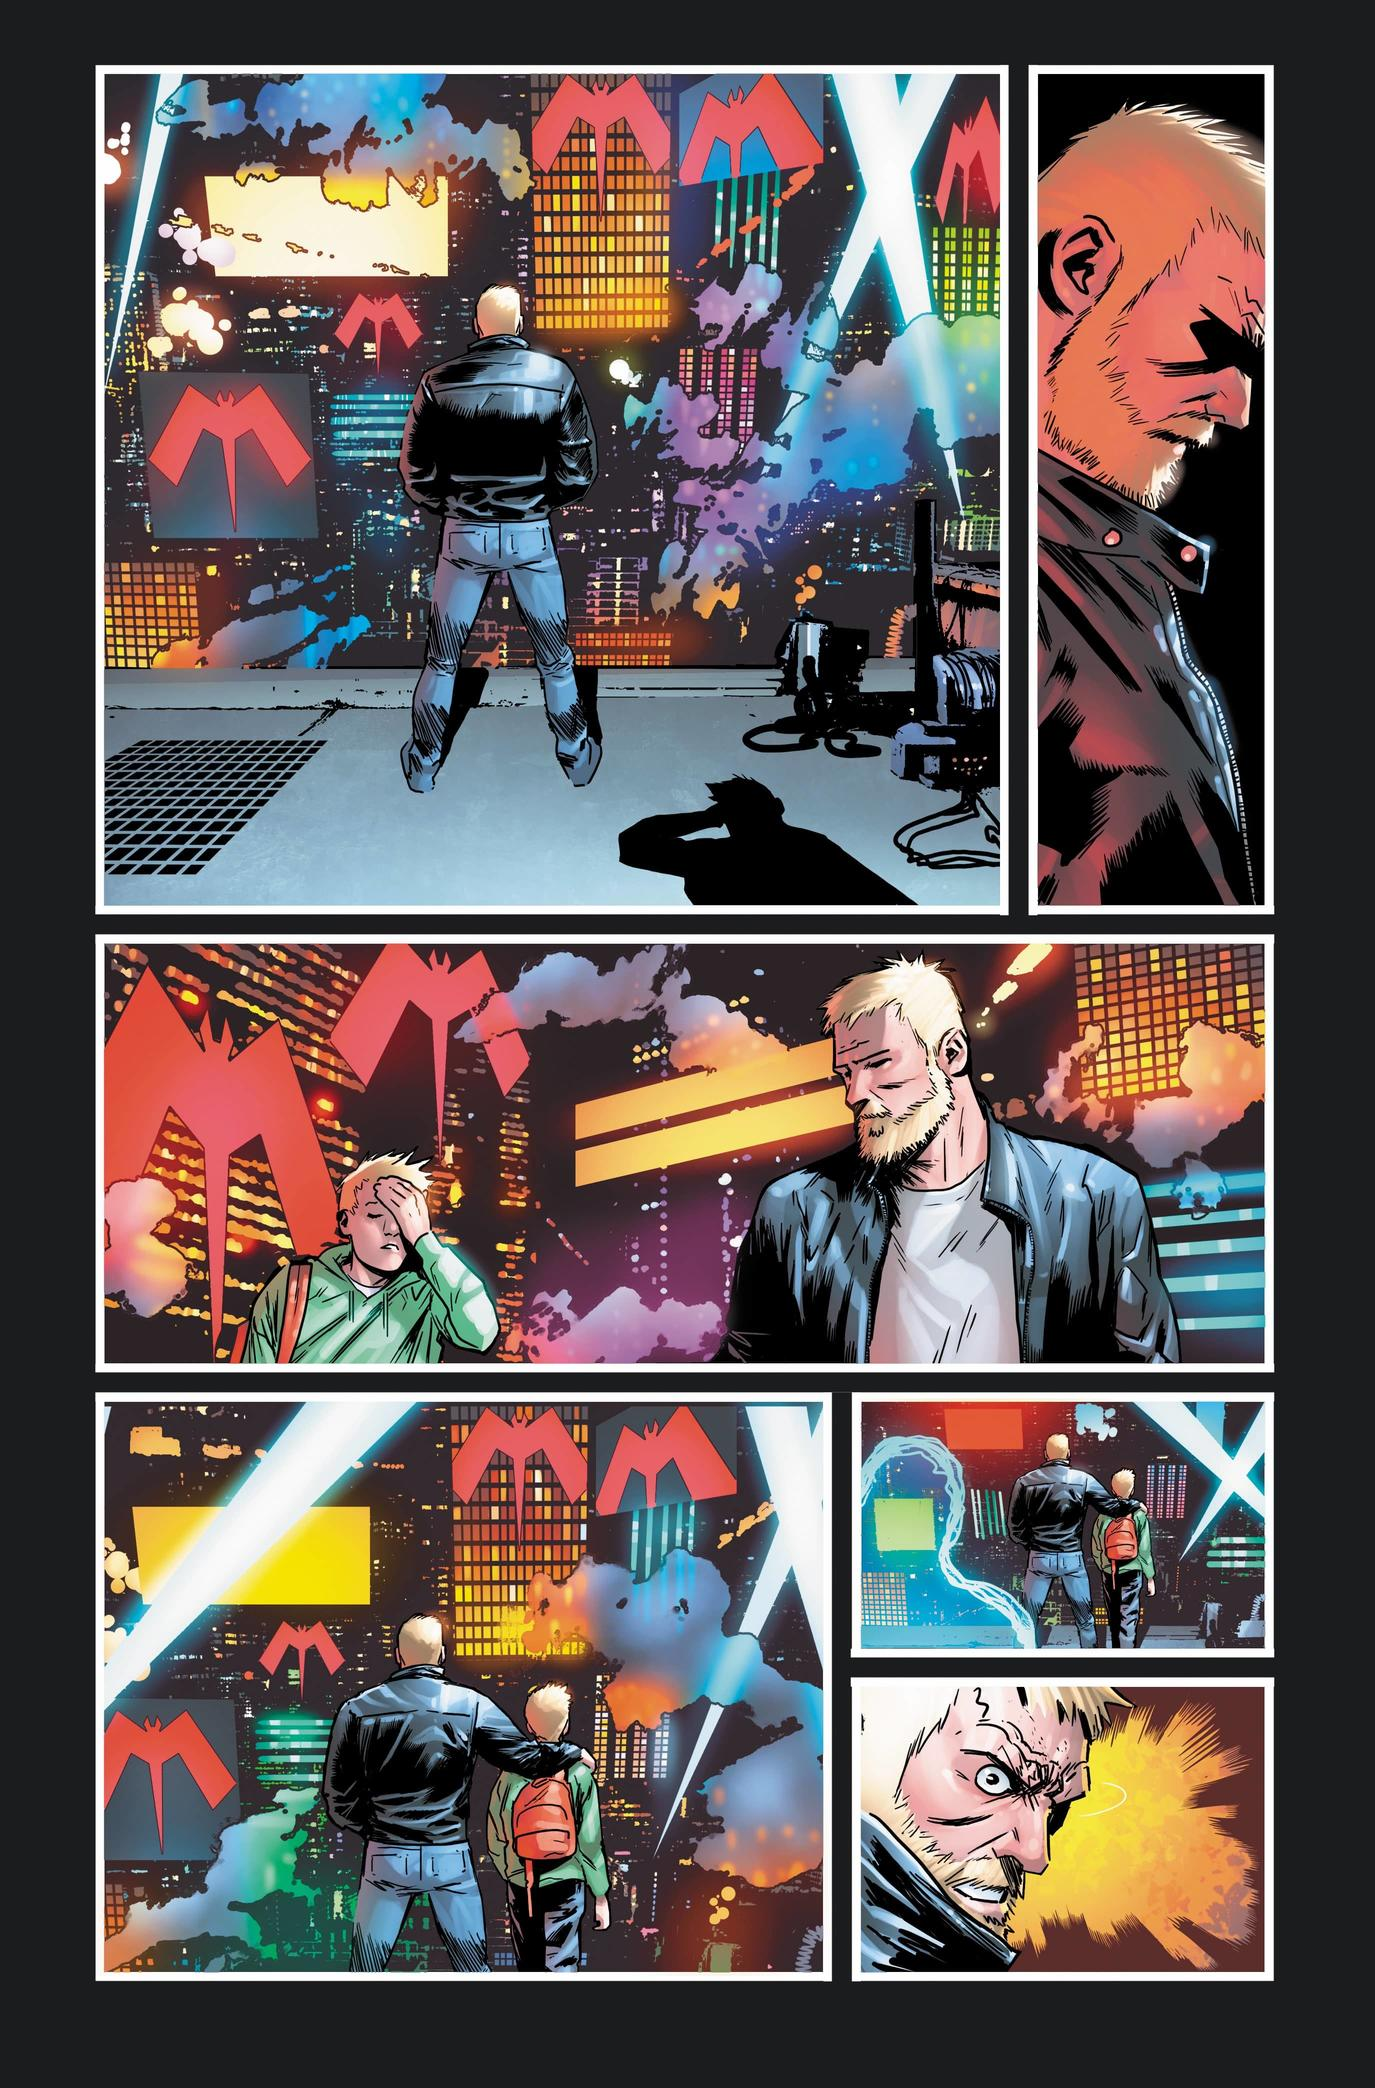 VENOM #27 preview interiors by Juan Gedeon with colors by Jesus Aburtov